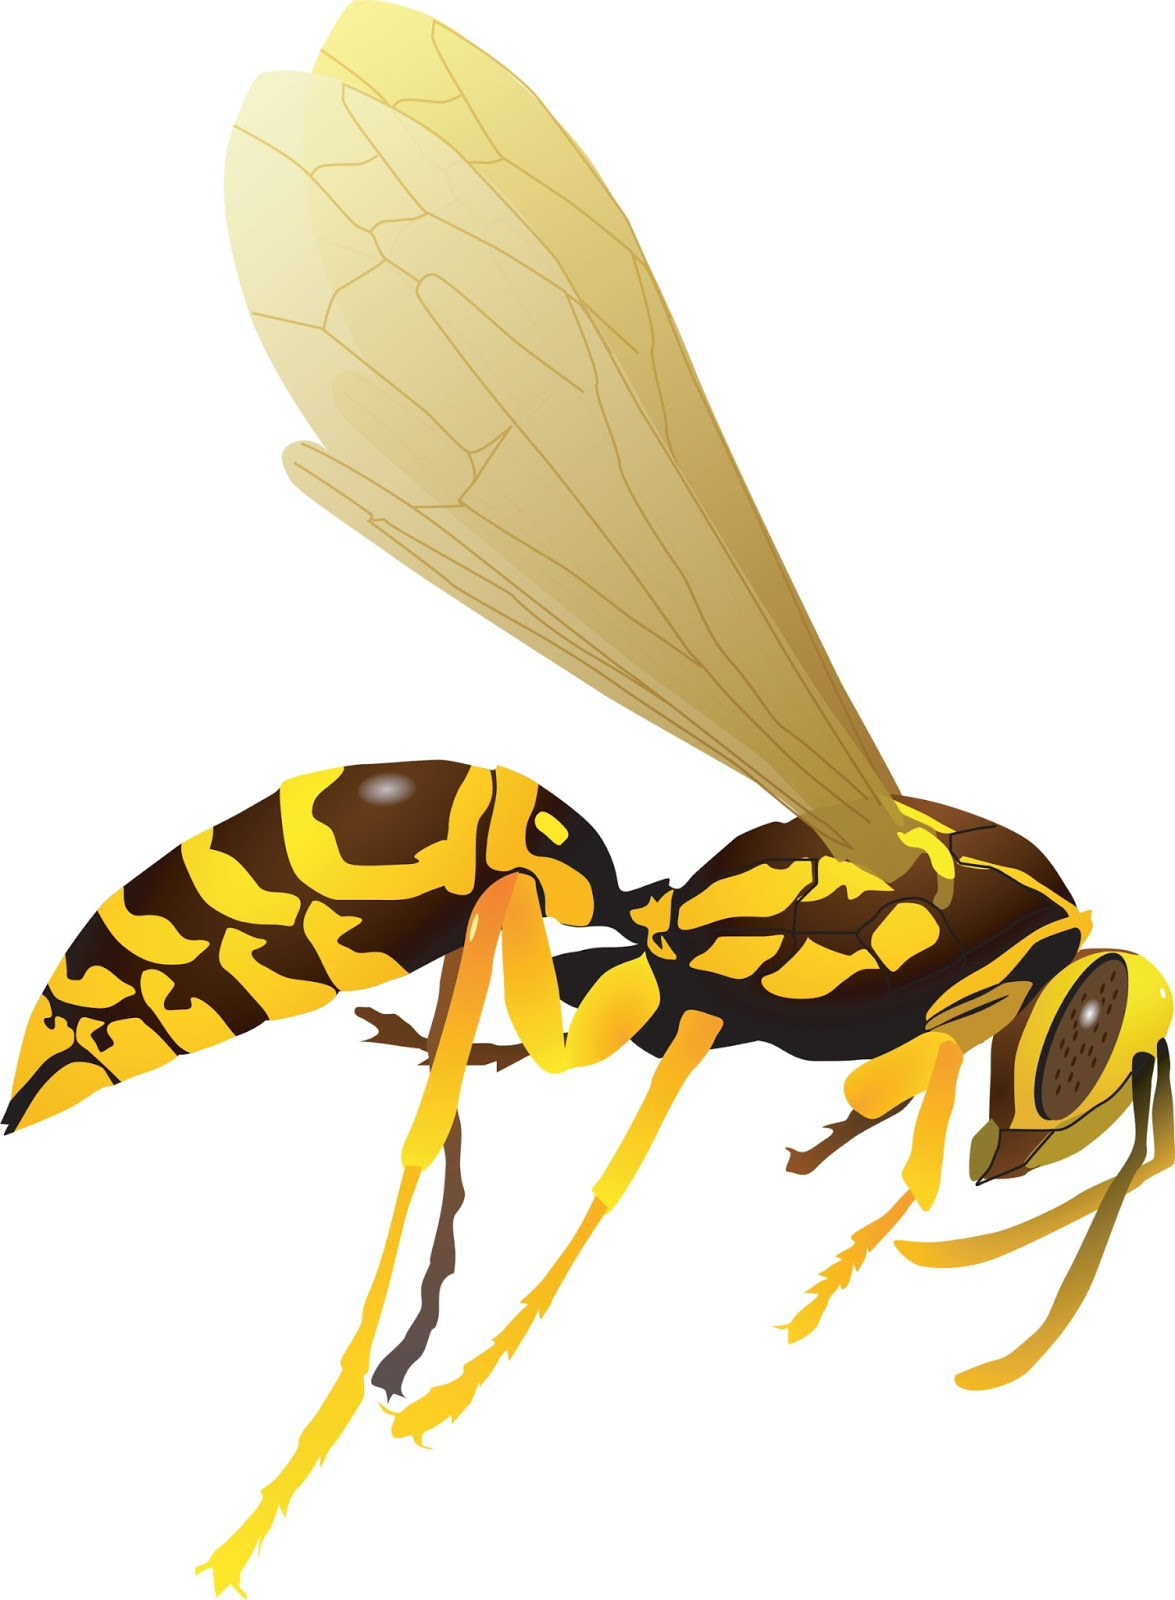 how to get rid of wasp stinging